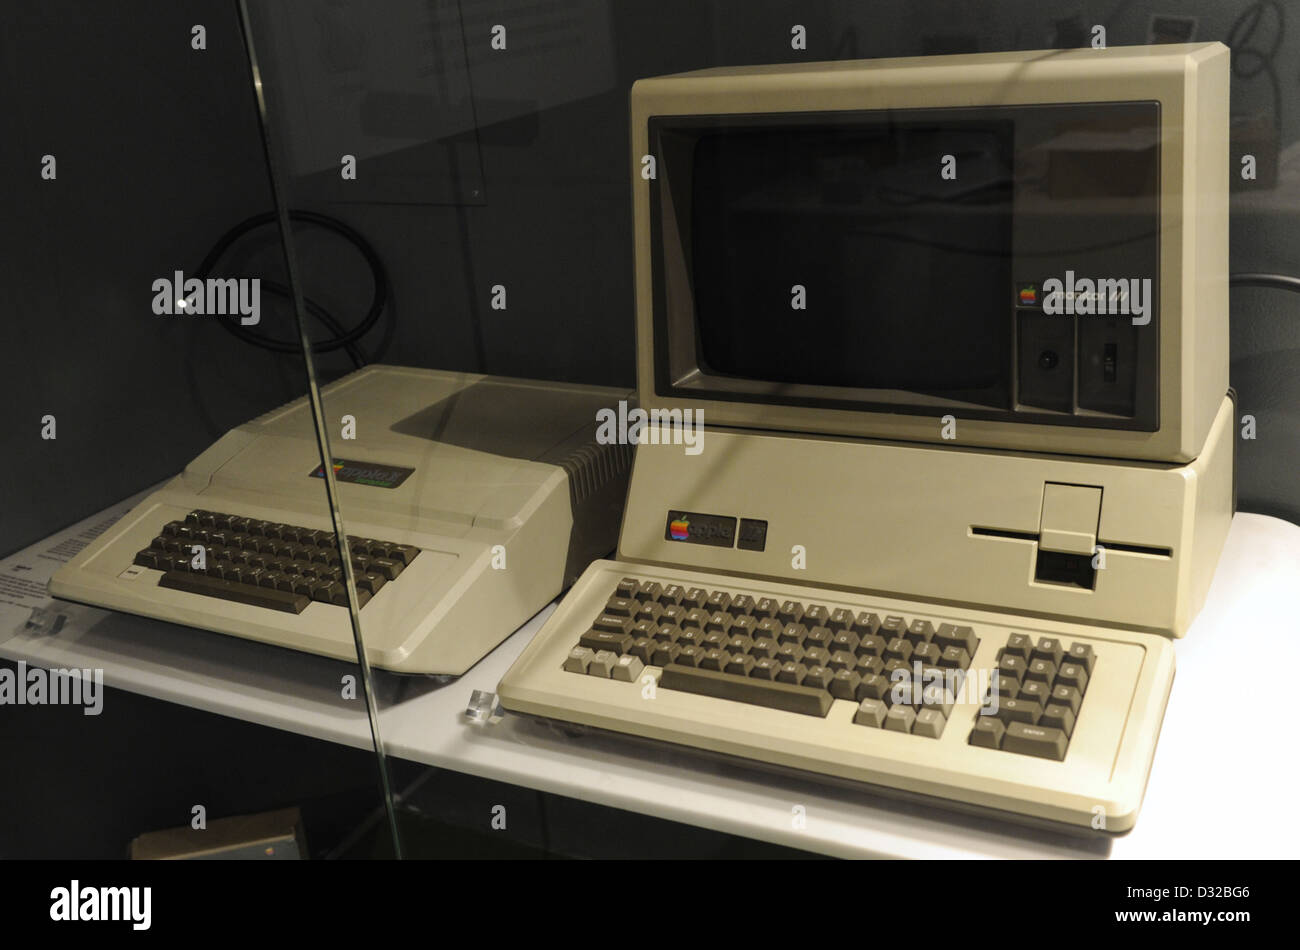 Computer. MAC model. Early 80's. 20th century. National Museum of Science and Technology Leonardo Da Vinci. - Stock Image